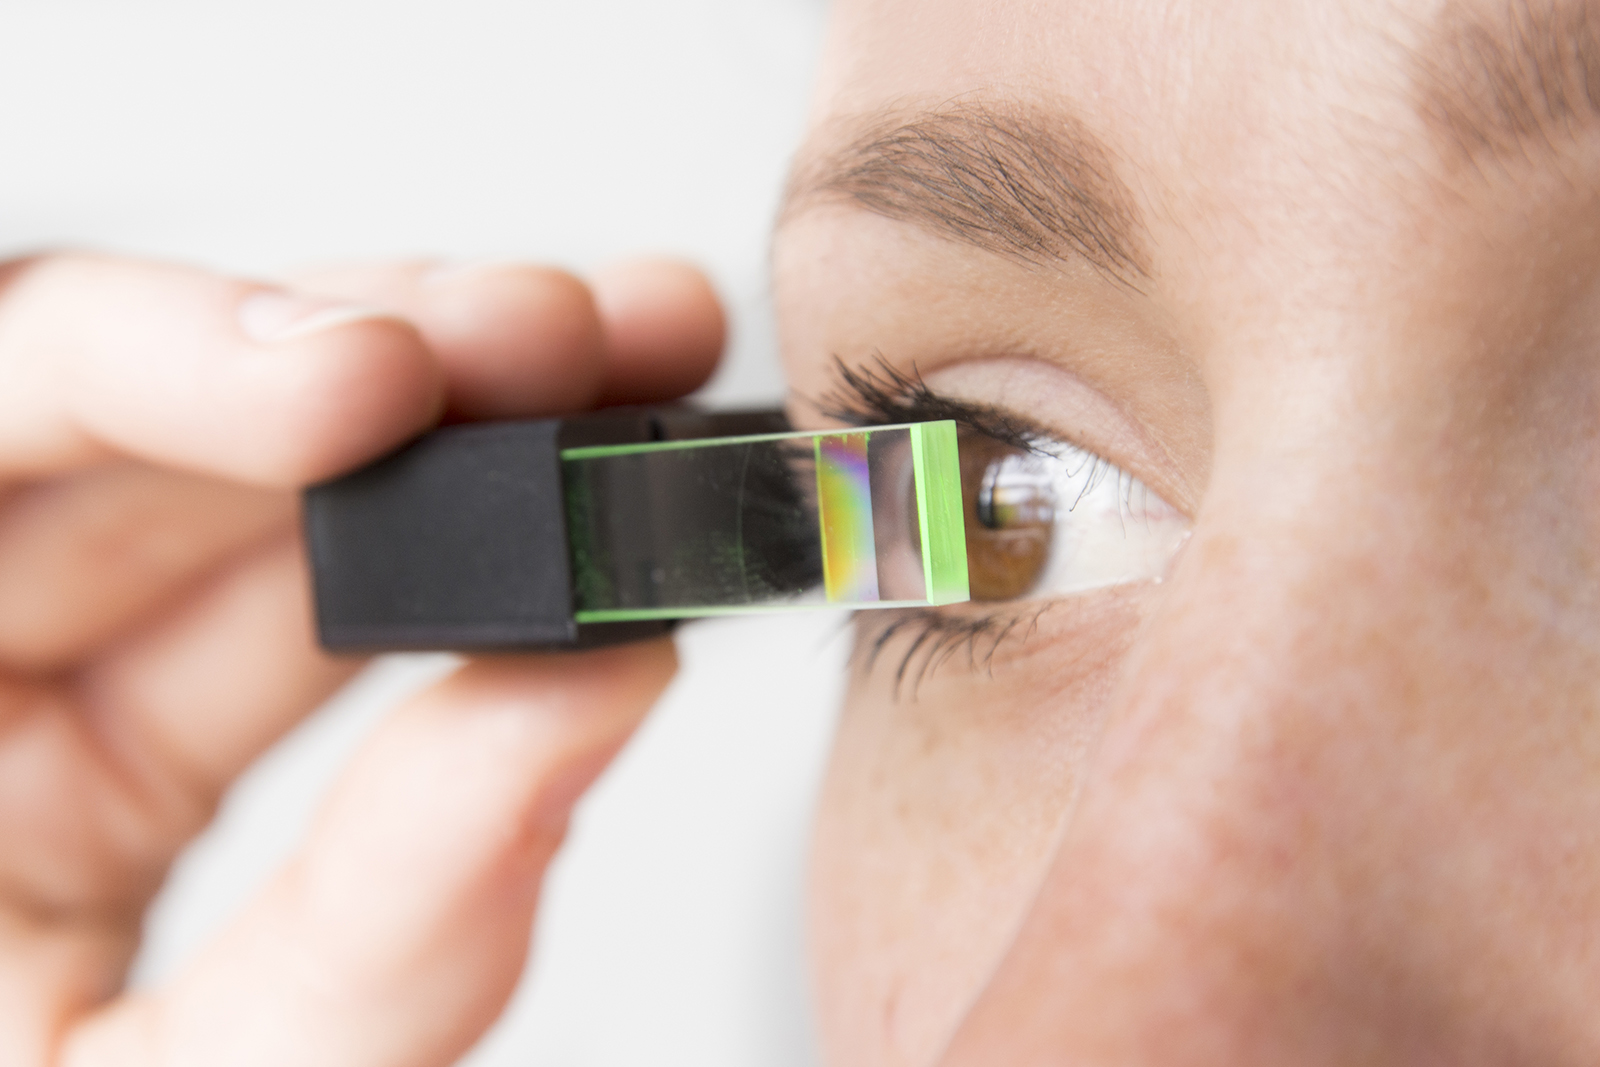 Small and discreet data glasses for everyday use